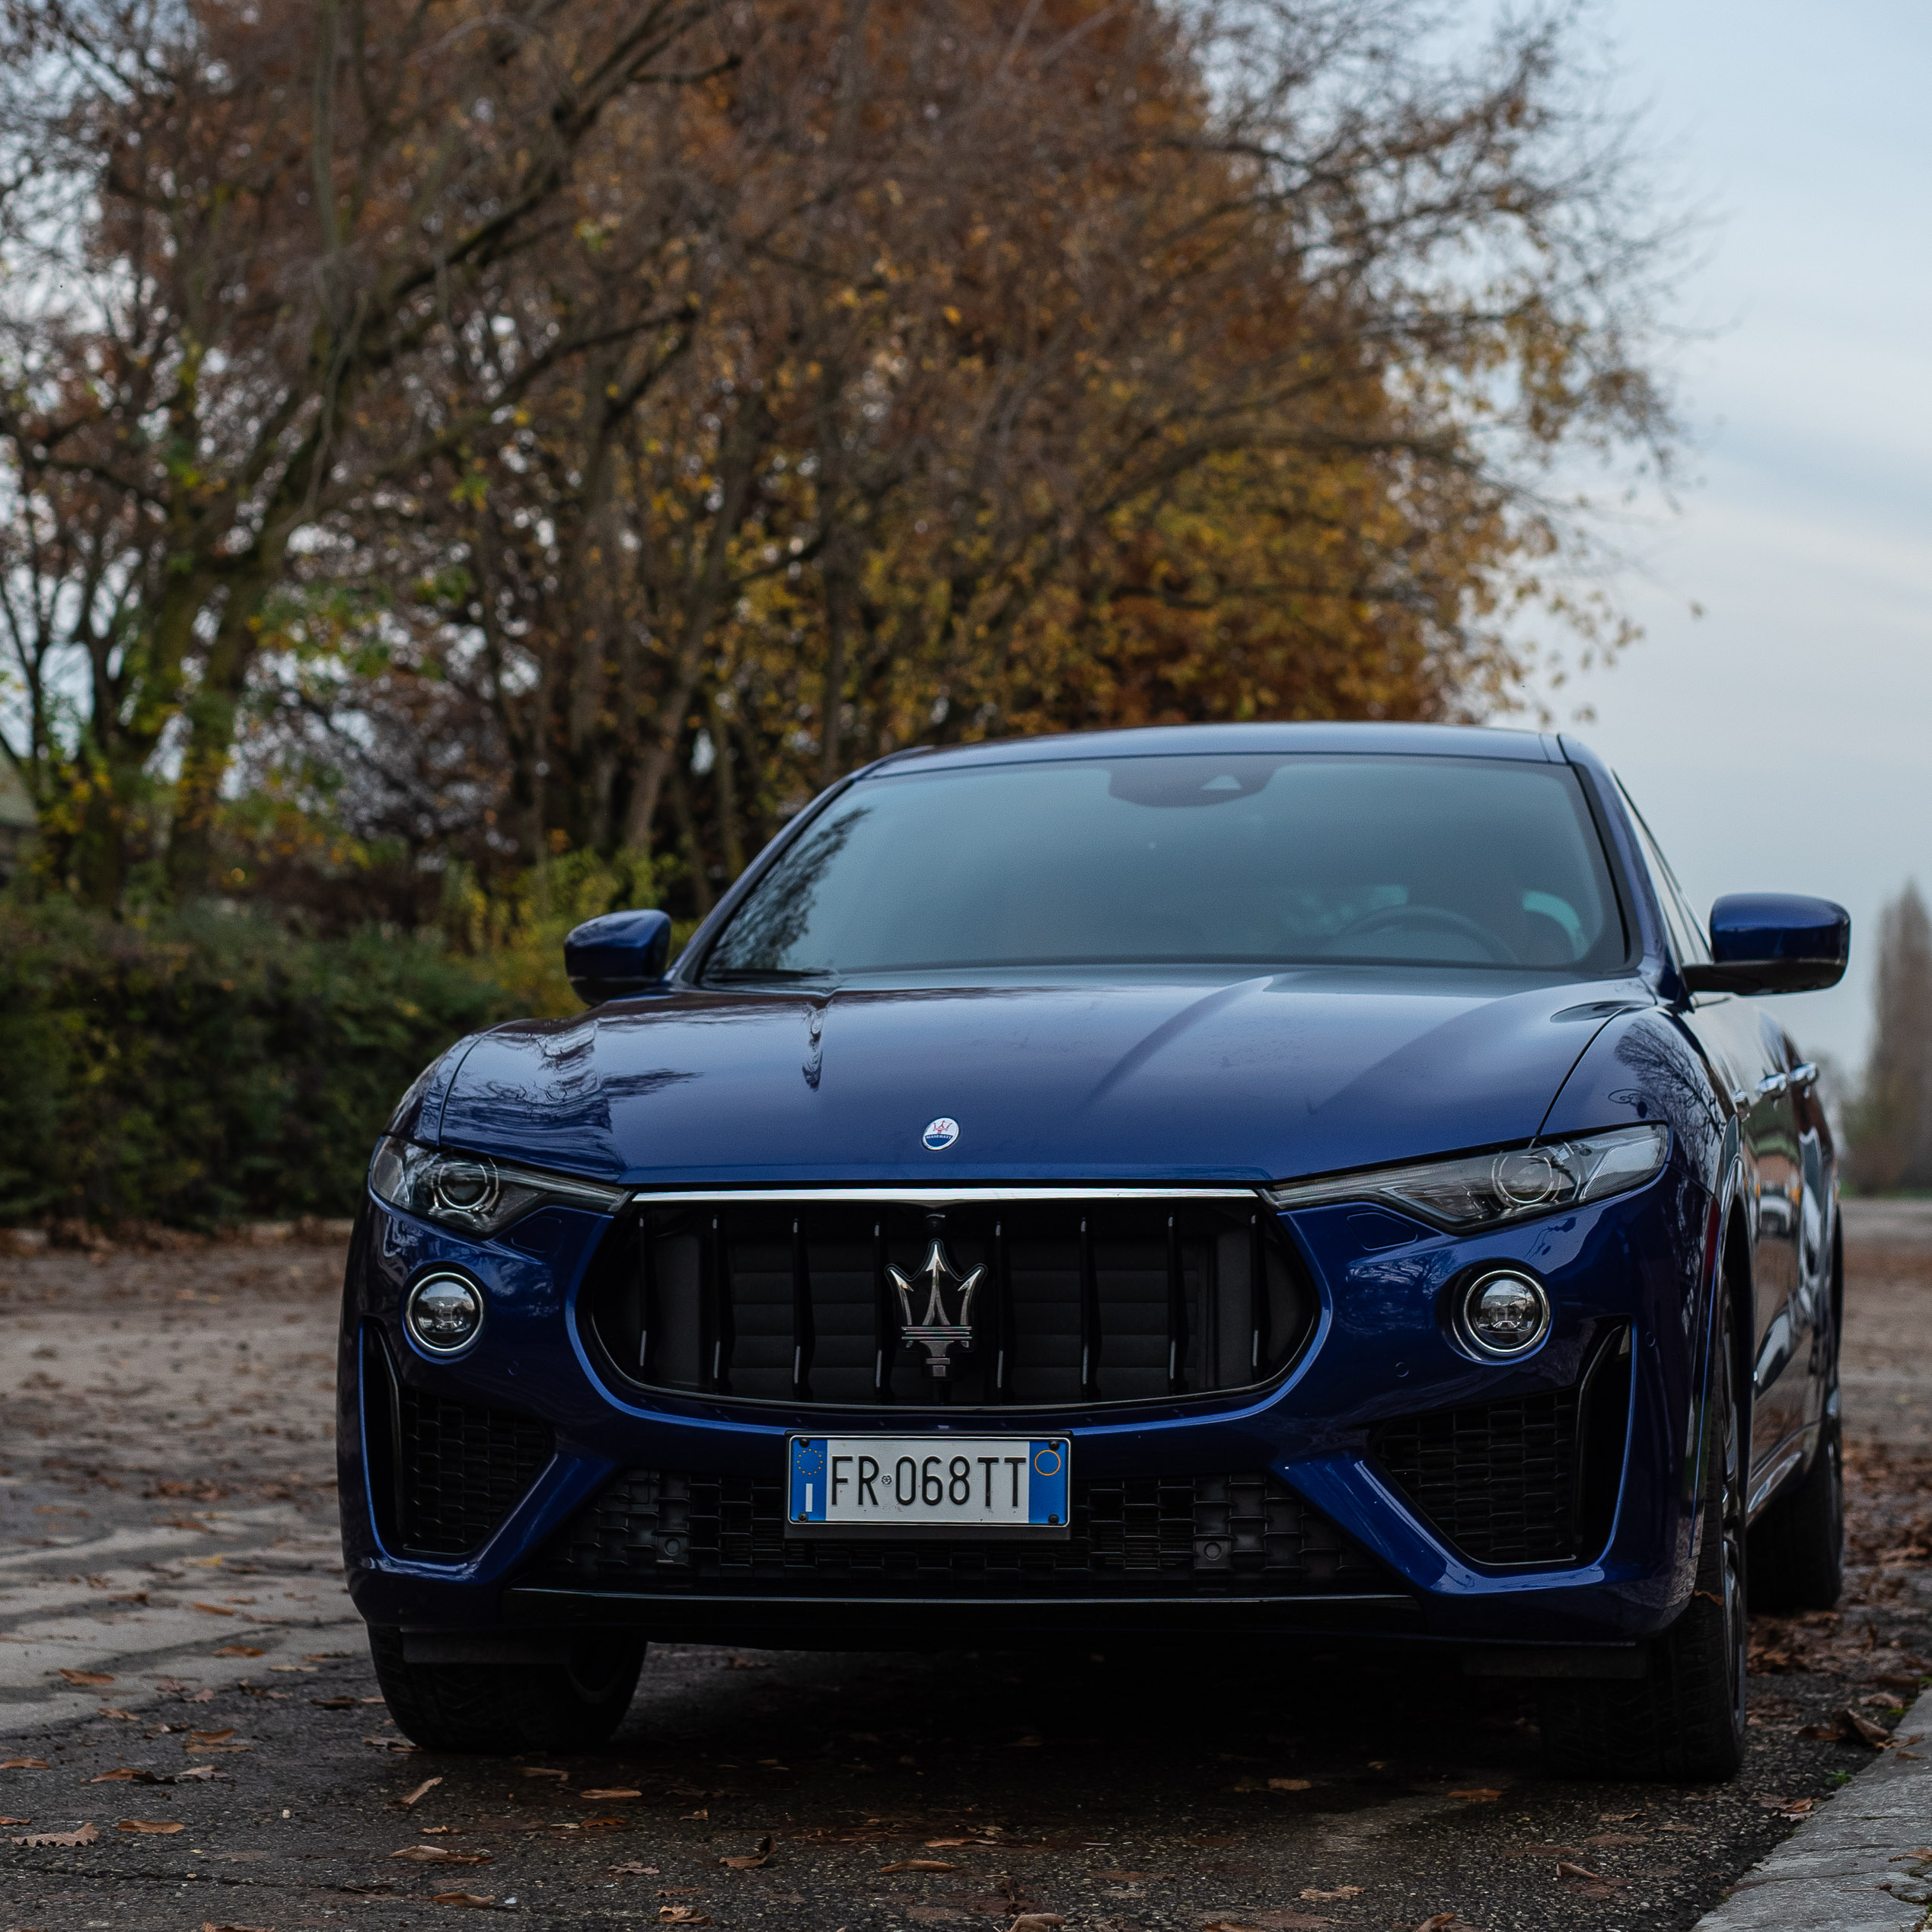 The Maserati Levante test drive